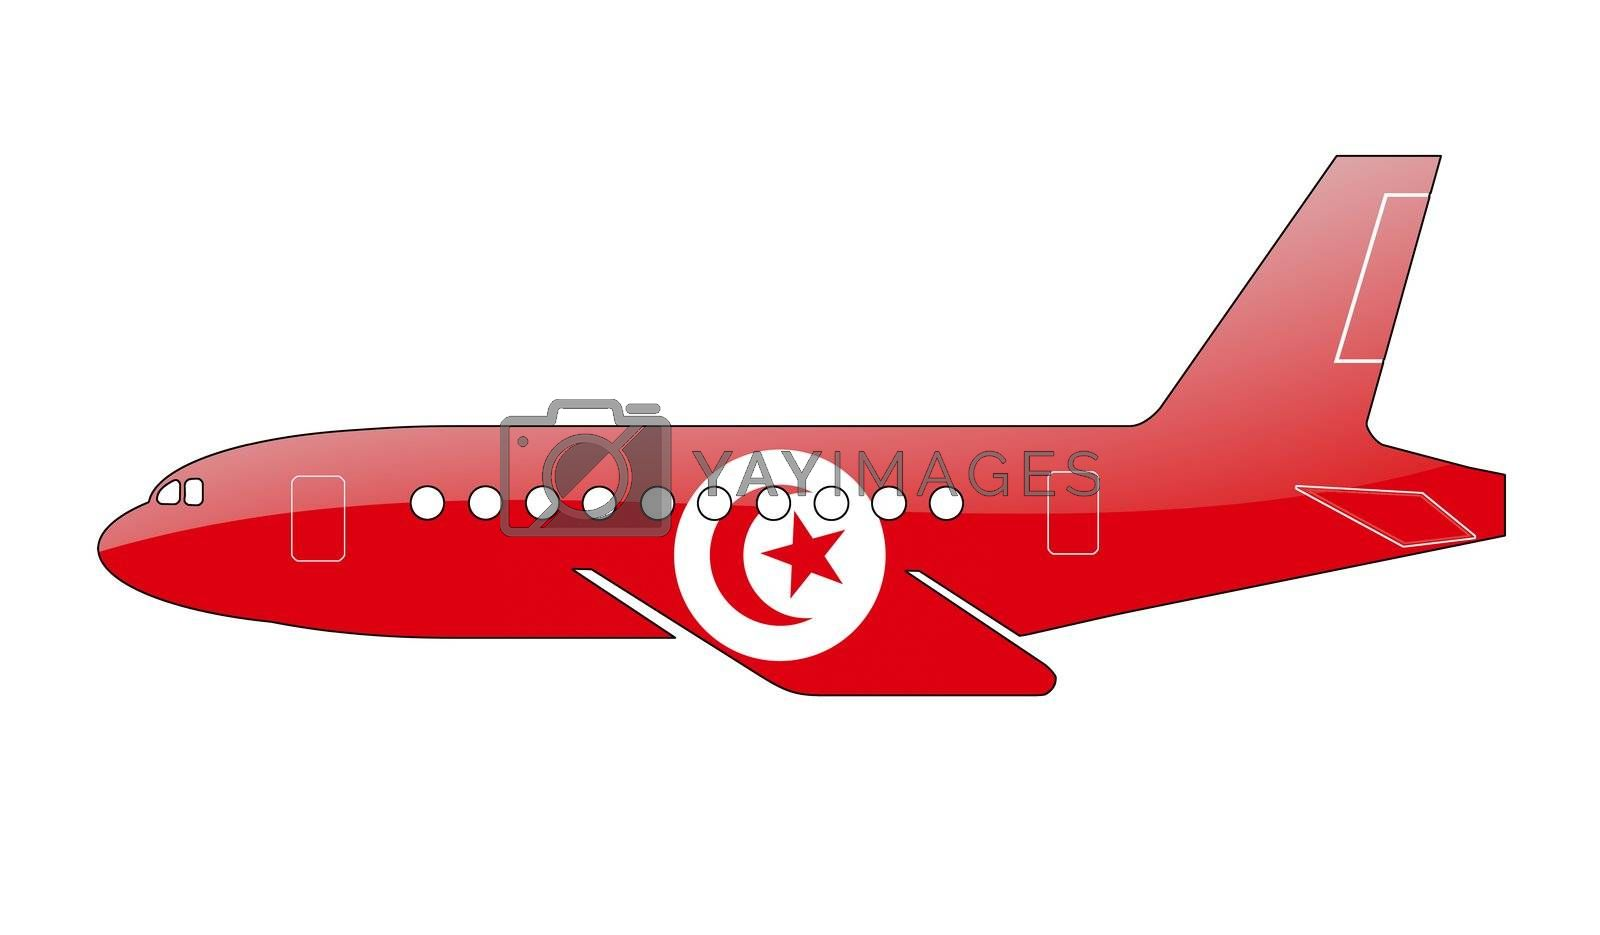 The Tunis flag painted on the silhouette of a aircraft. glossy illustration